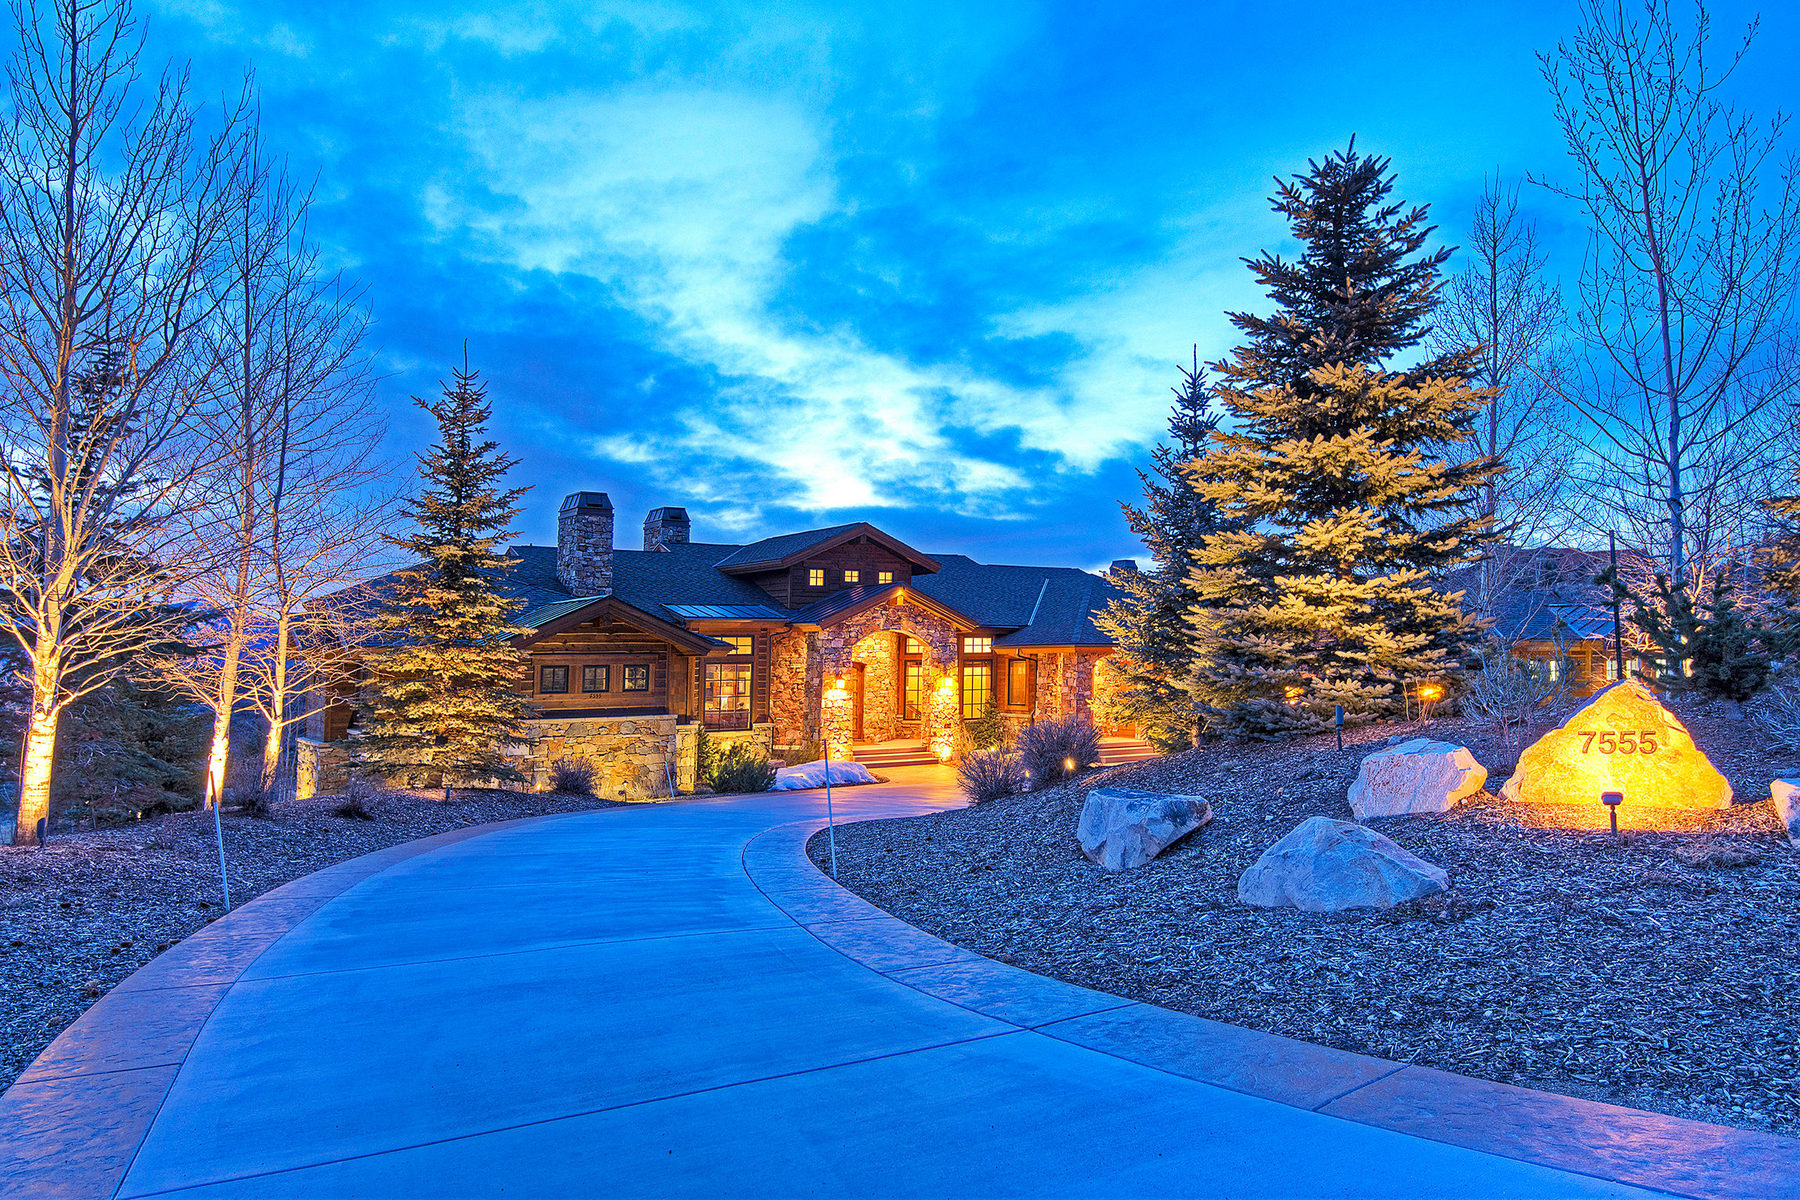 獨棟家庭住宅 為 出售 在 Stunning Promontory Mountain Home With Golf & Ski Resort Views 7555 N. Ranch Club Trail Lot 23 Park City, 猶他州 84098 美國